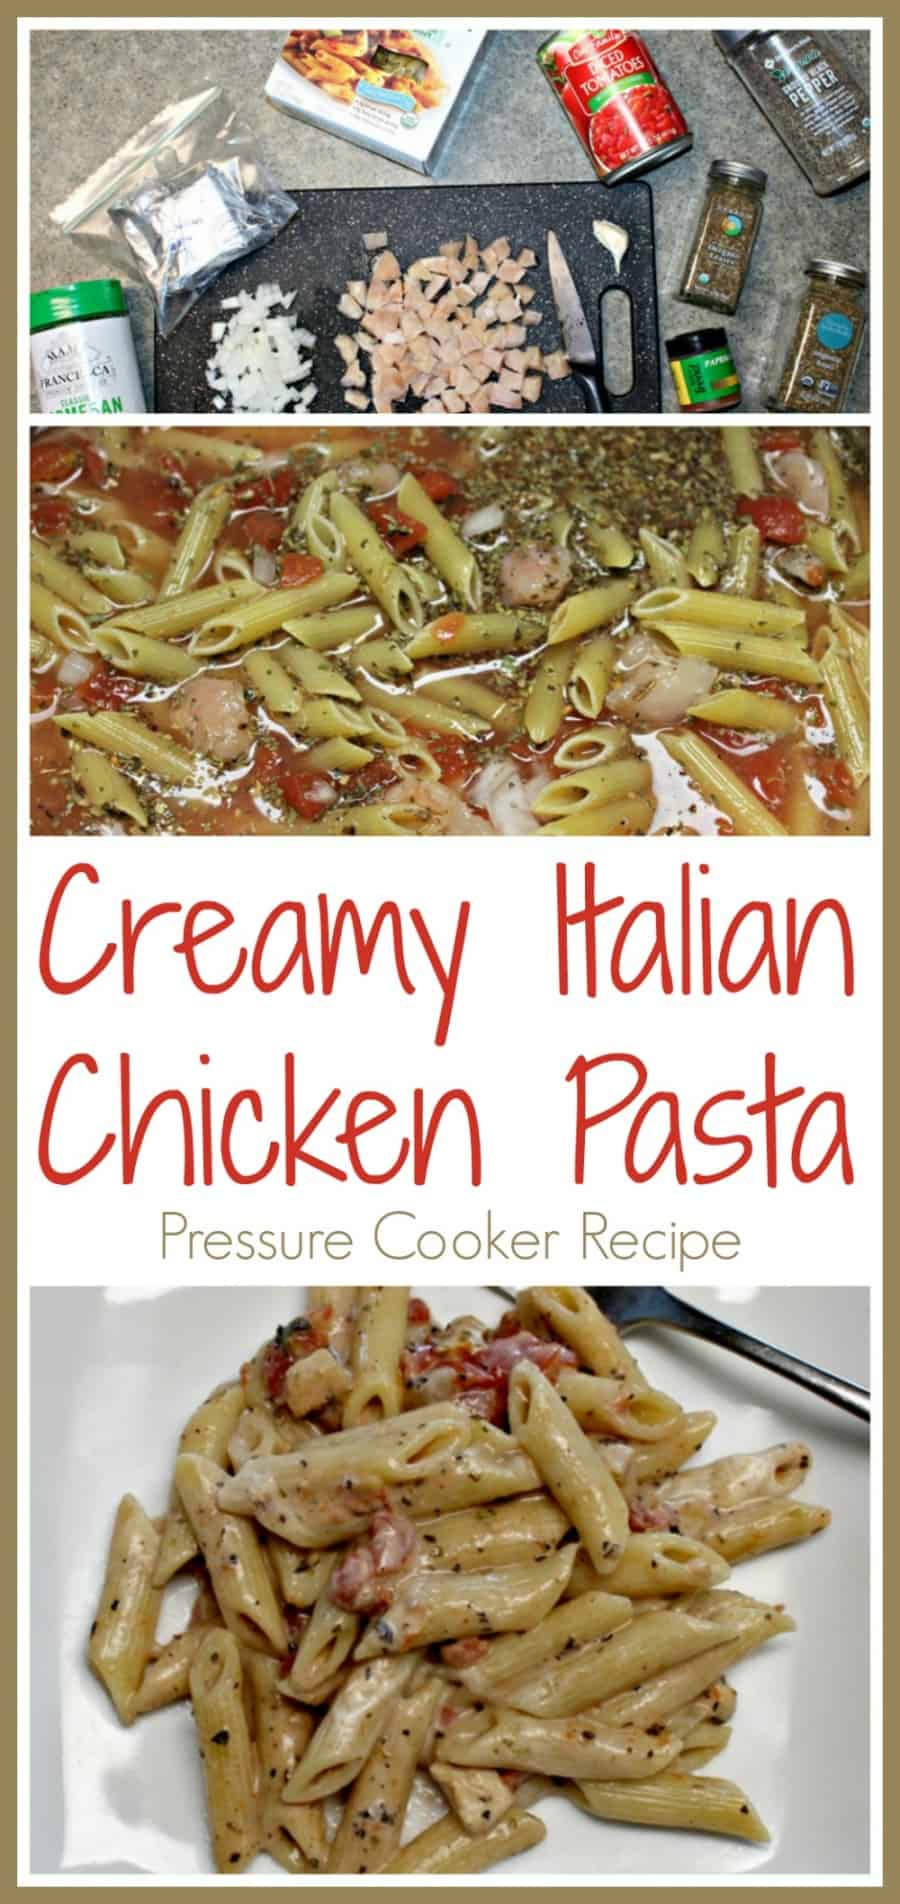 Creamy Italian Chicken Pasta {Pressure Cooker Recipe}